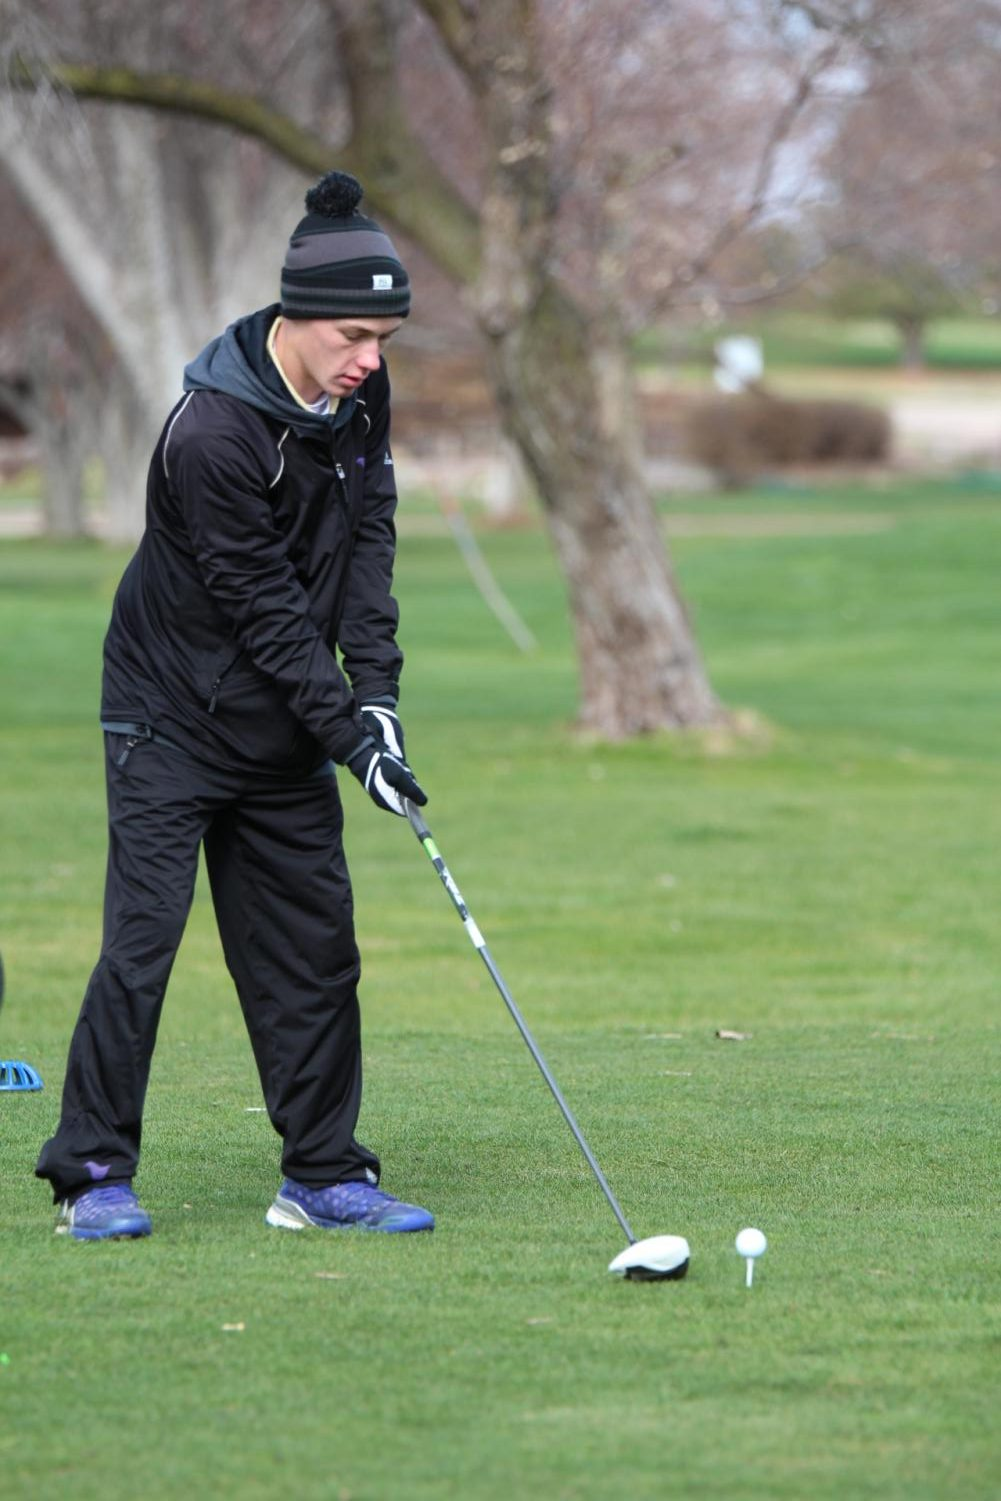 Senior Logan Neinast takes a practice swing before teeing off on Hole 5 during the Holdrege Invite.